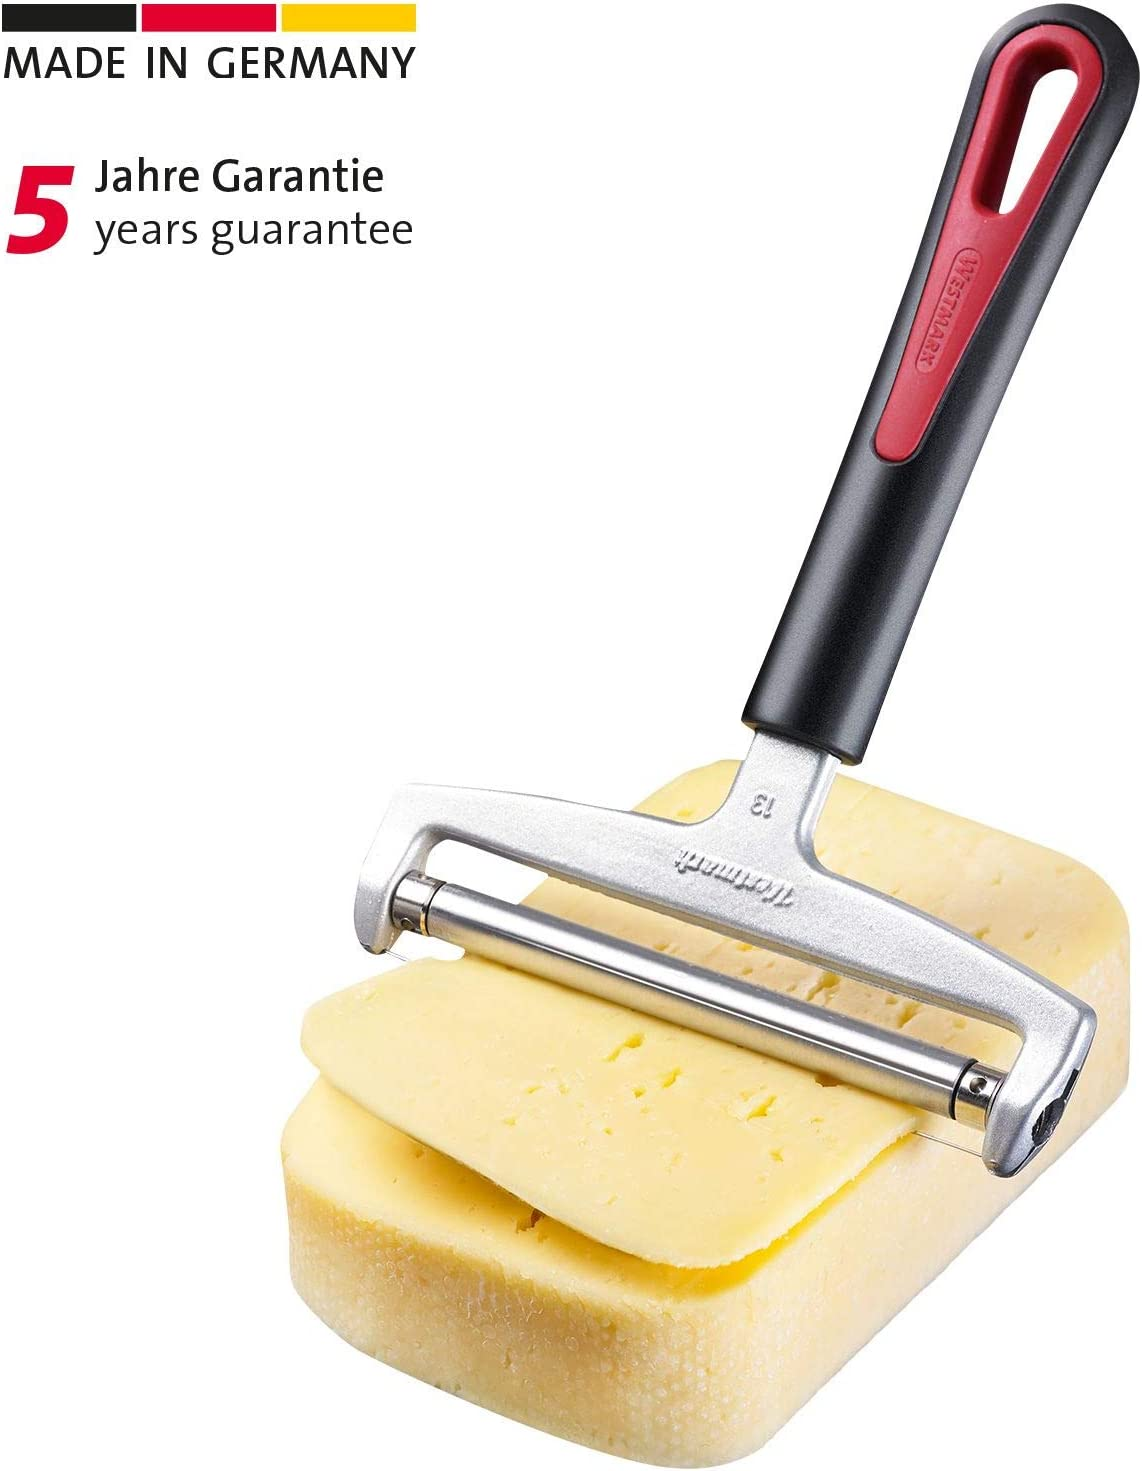 Westmark Special Gallant Cheese Slicer, one size, Red/Black